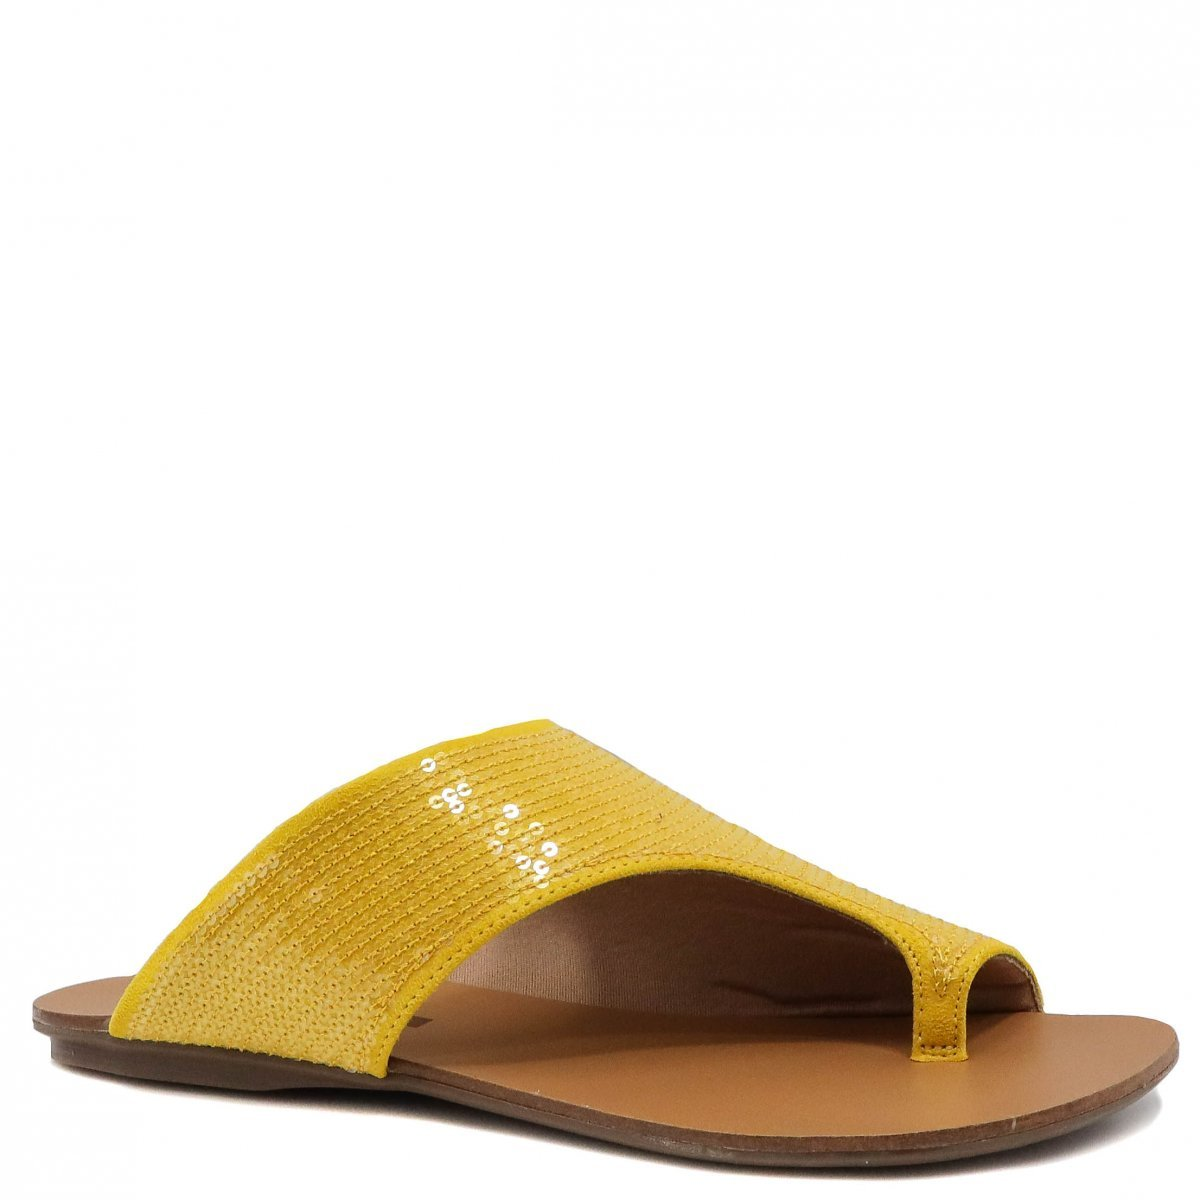 Rasteira Zariff Shoes Assimetrico Amarelo